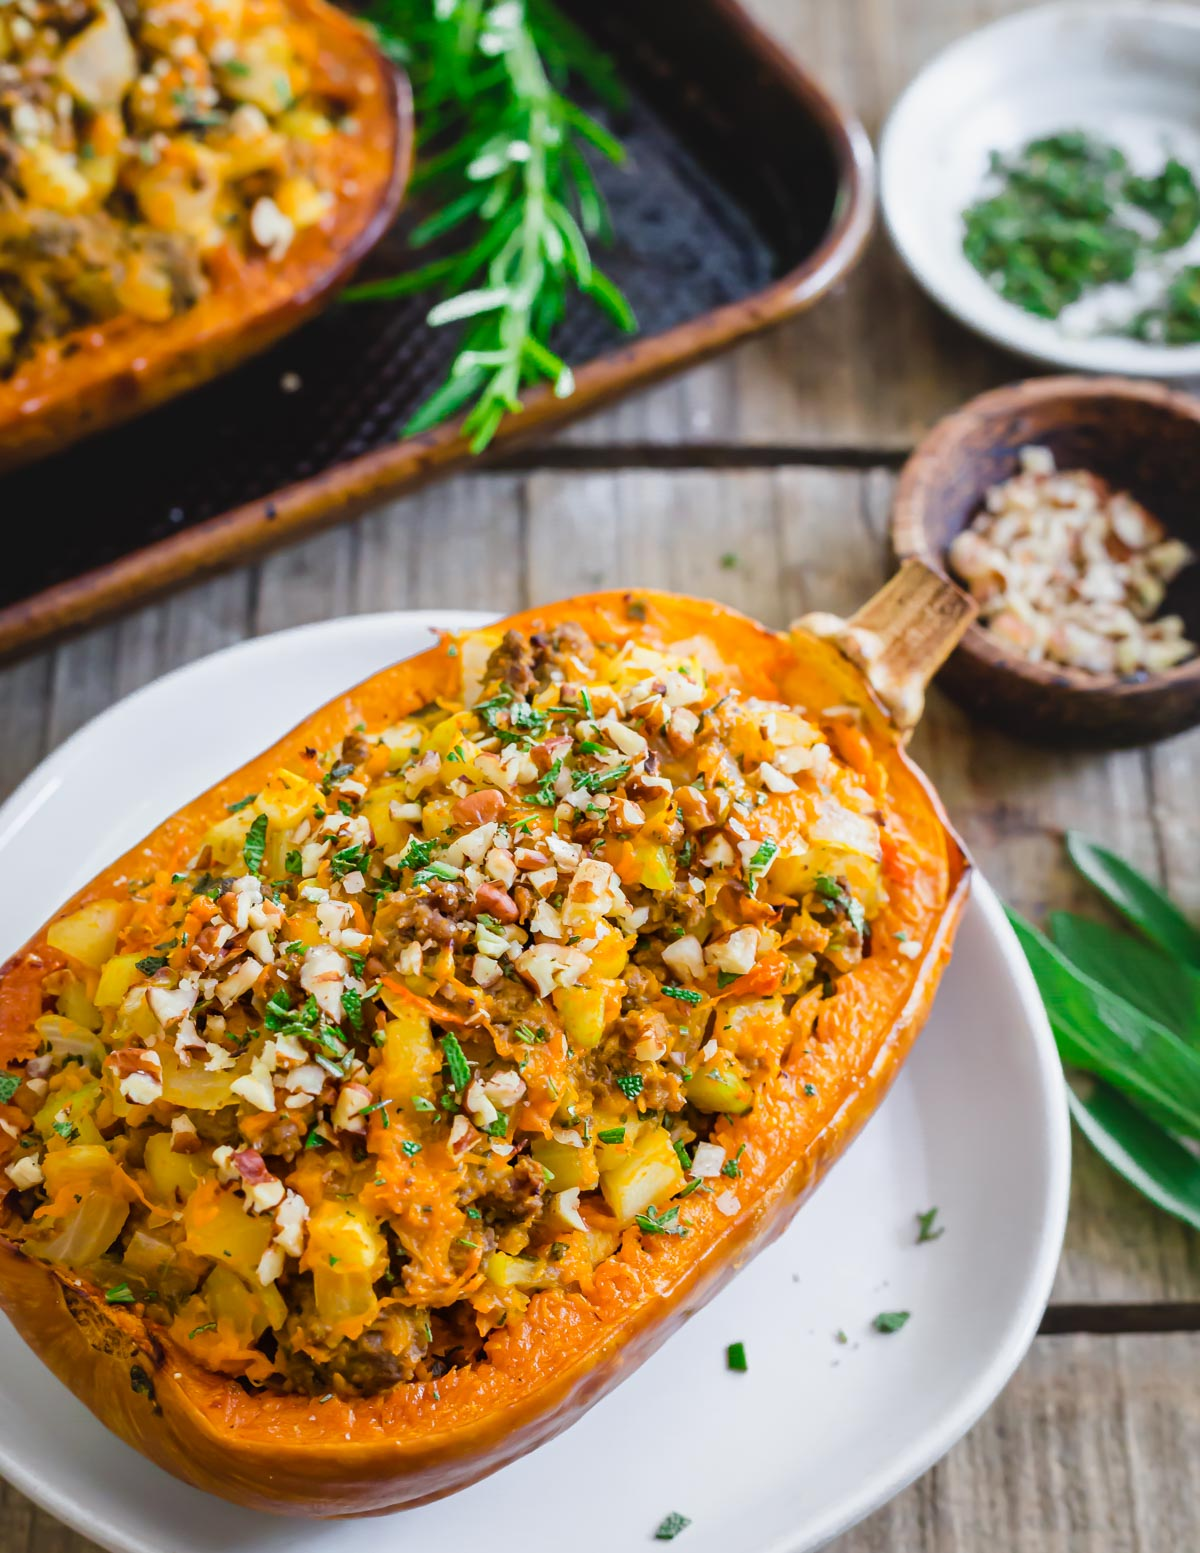 Learn how to roast and stuff honeynut squash with this quick and easy fall inspired recipe.